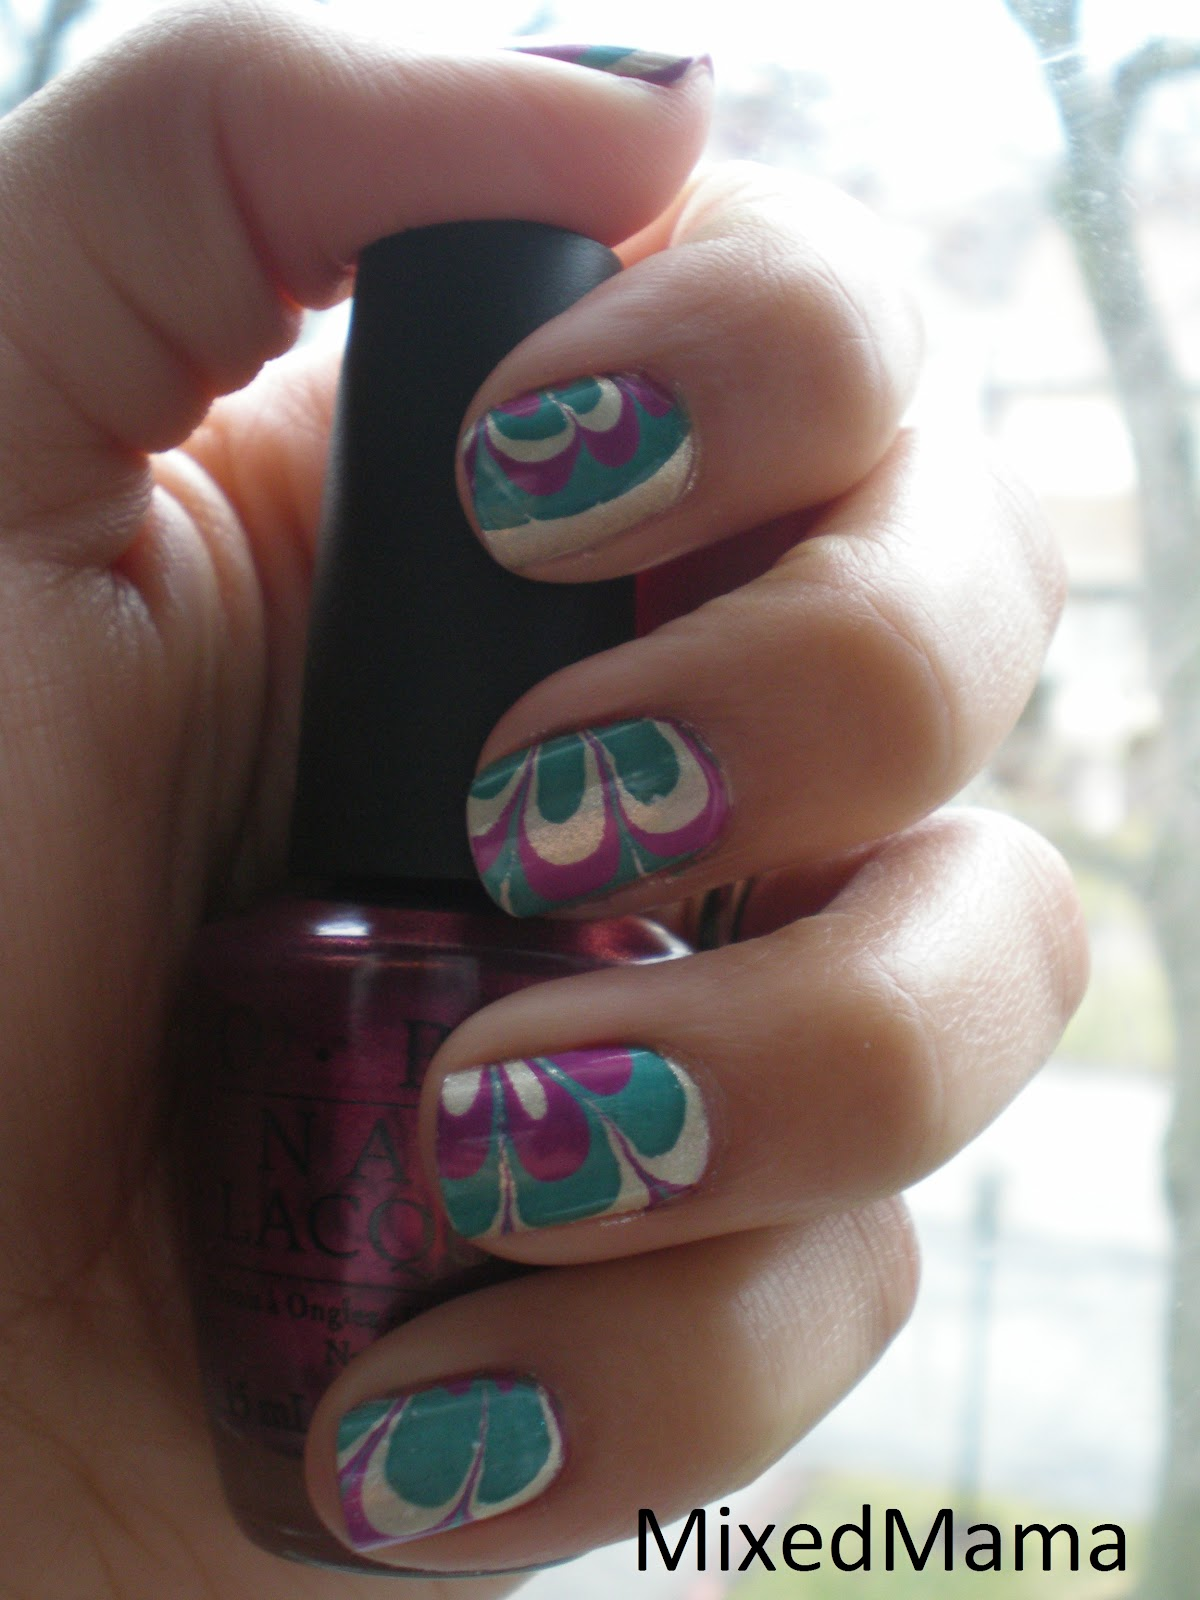 MixedMama: Water Marble Mardi Gras Nails